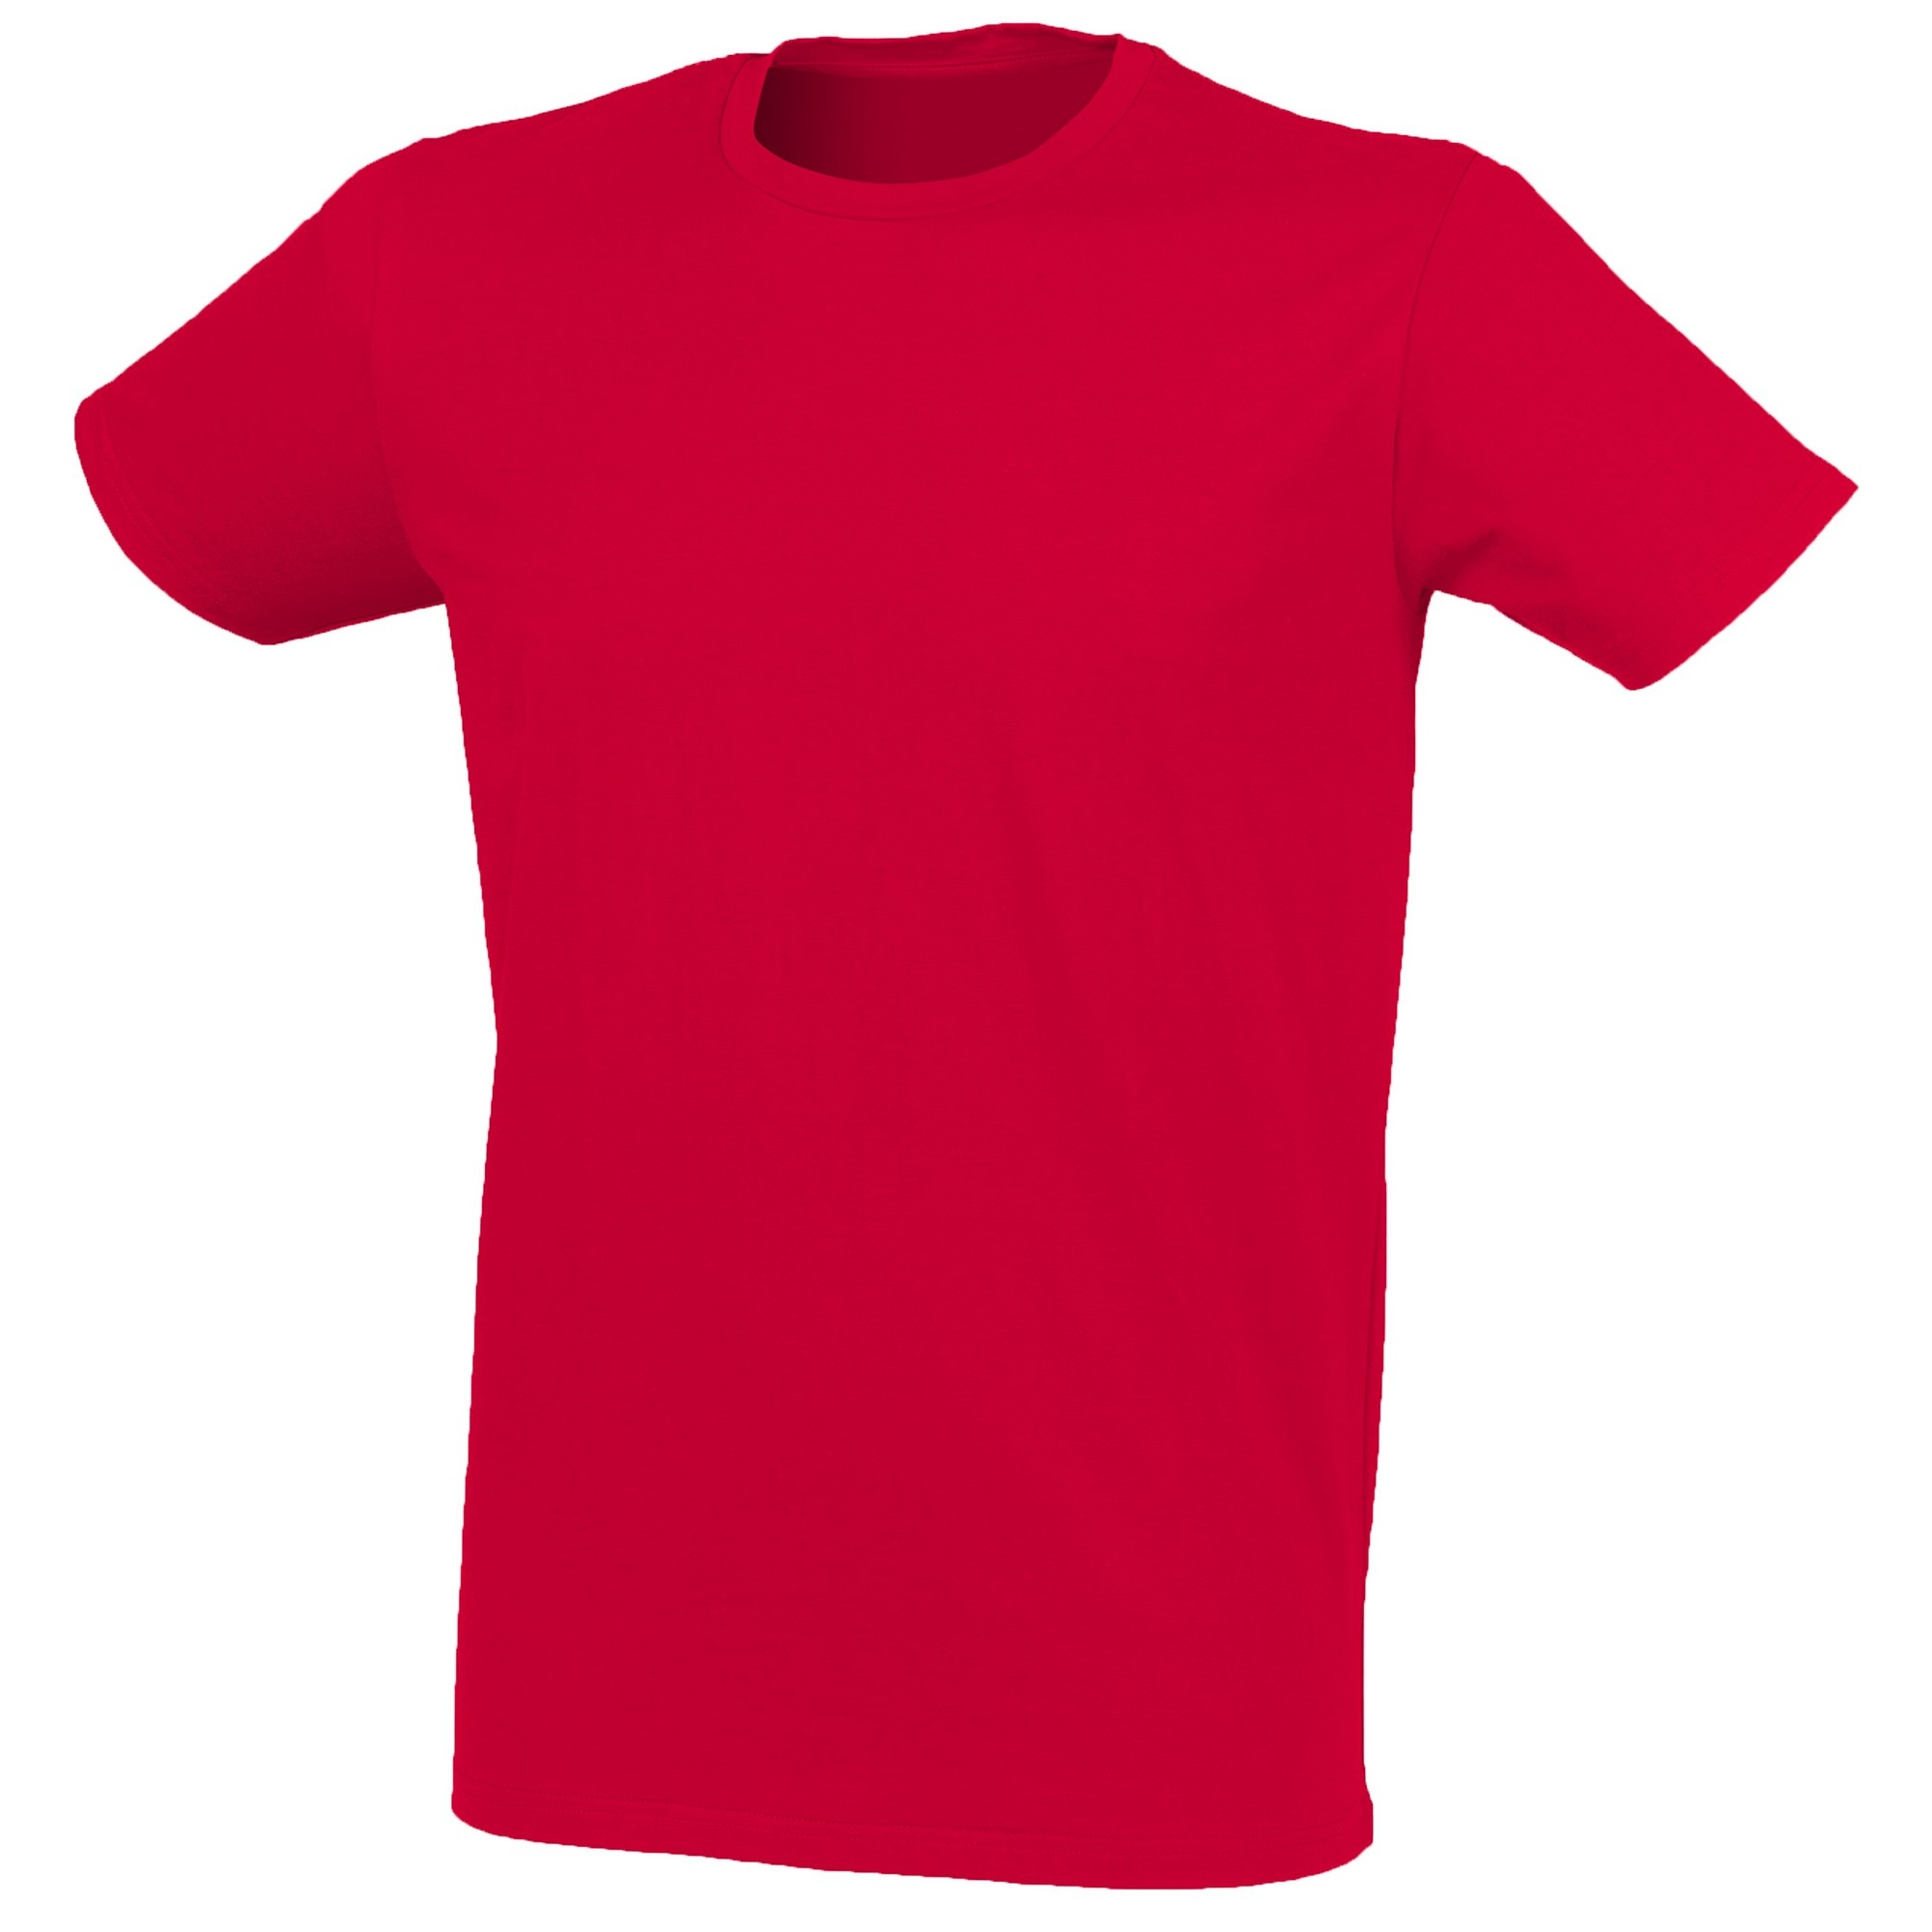 Skinni Fit Men Mens Feel Good Stretch Short Sleeve T-Shirt (S) (Heather Red)